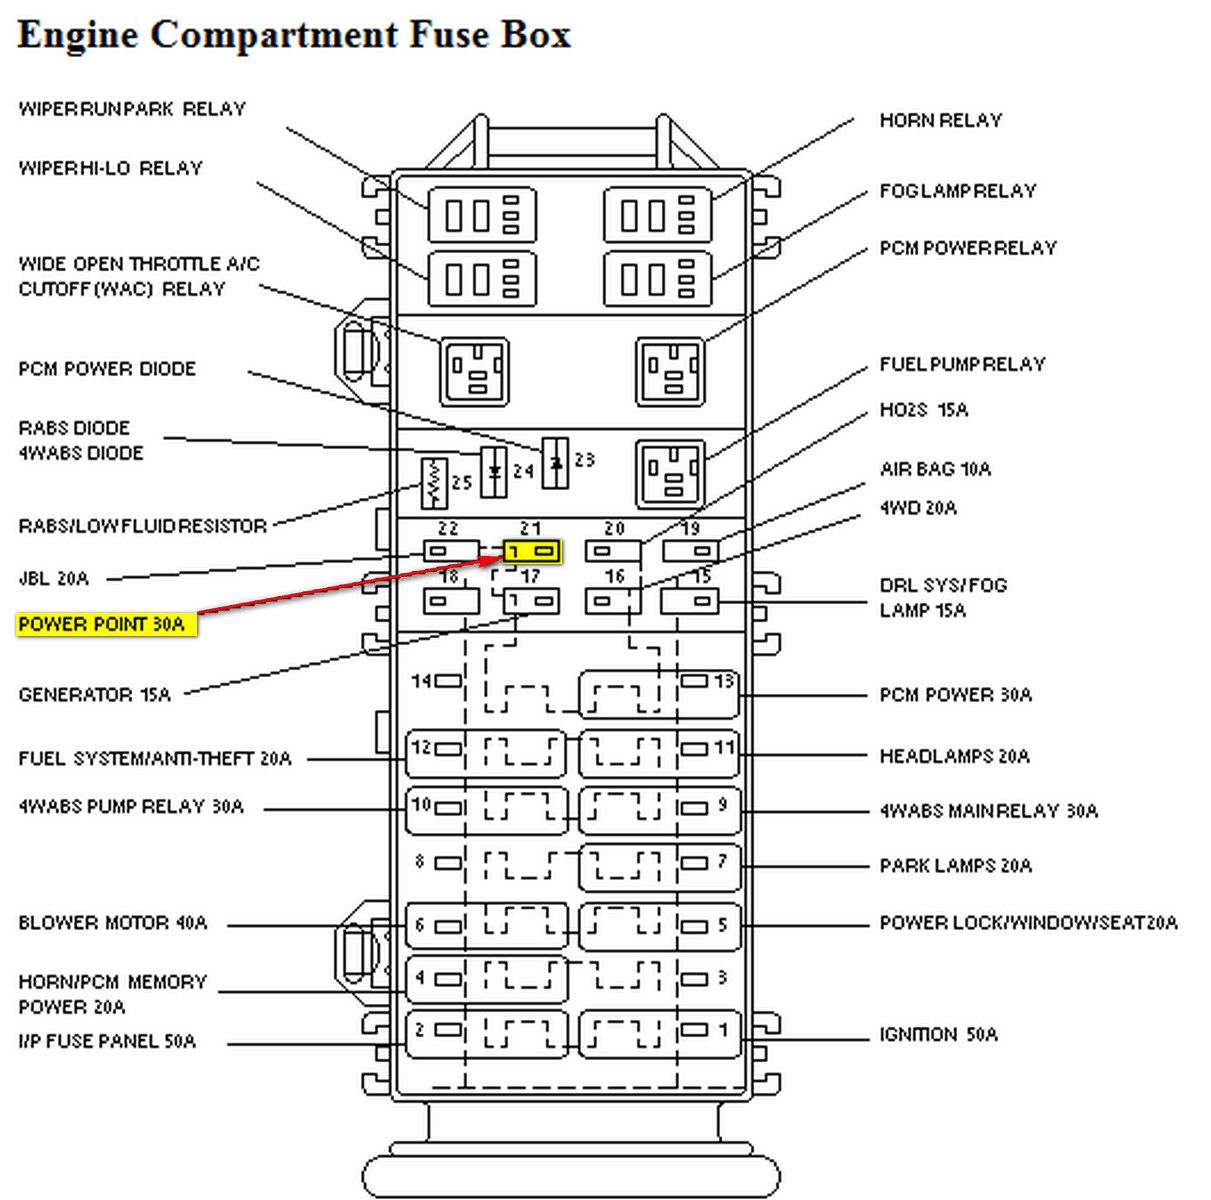 Ford Thunderbird Fuses Diagram Wiring Library 1970 Fuse Box 1997 Ranger Truck Part Diagrams Rh Pinterest Com 97